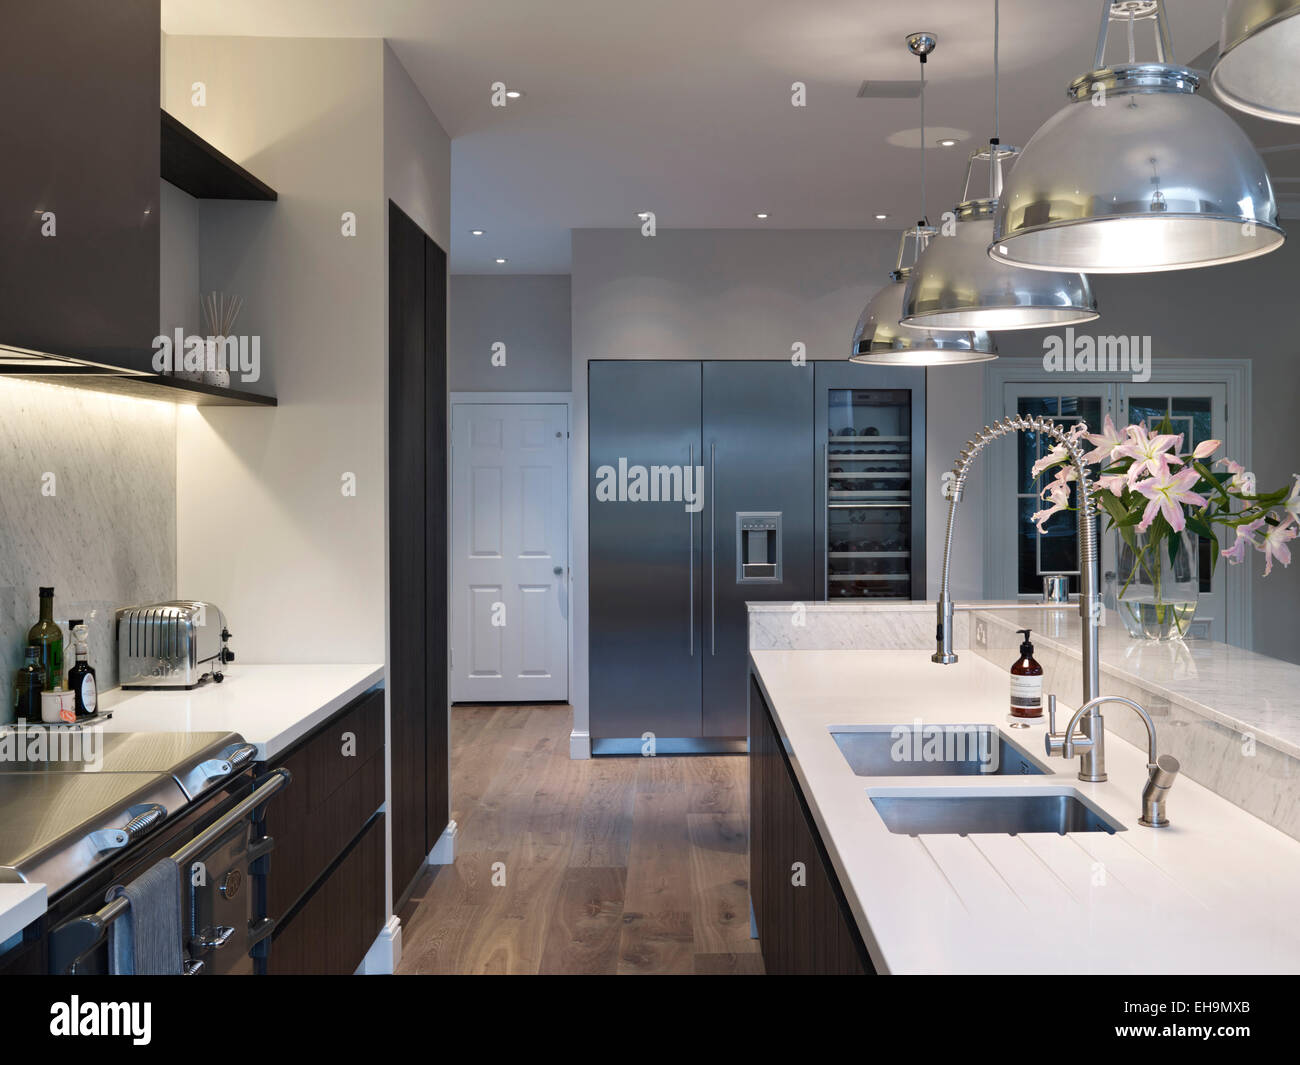 Modern Kitchen With Pendant Lights Above Island Unit Residential - Buy kitchen pendant lights